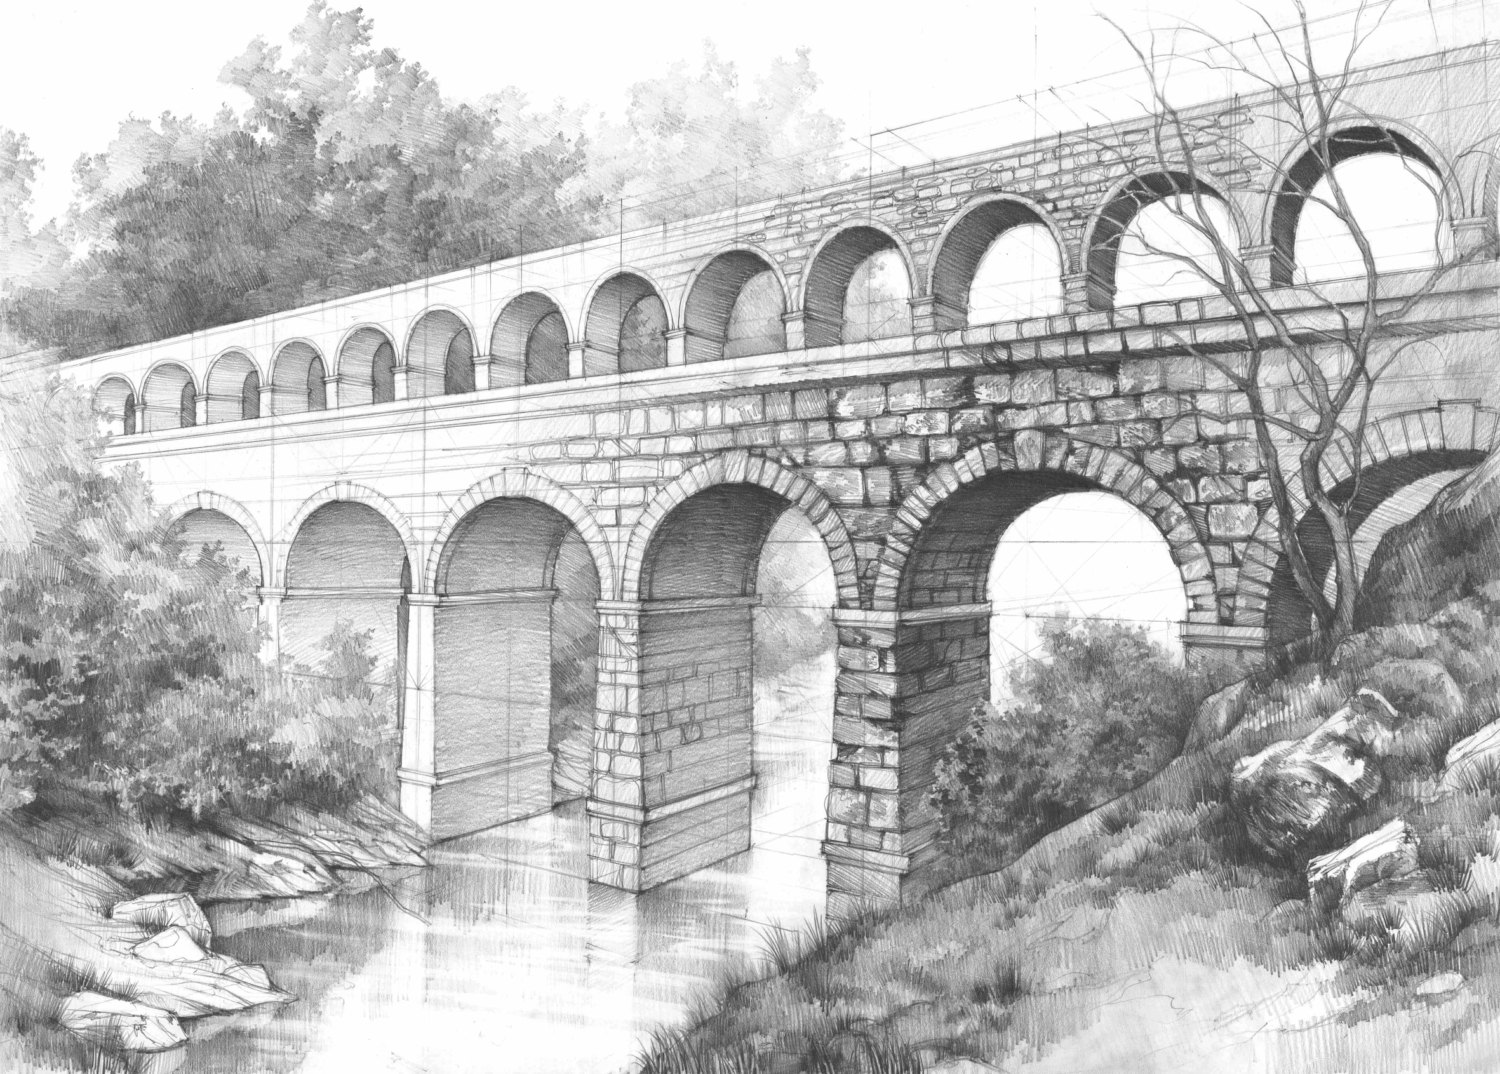 Drawn bridge landscape Kmiecik Etsy architecture Aqueduct old